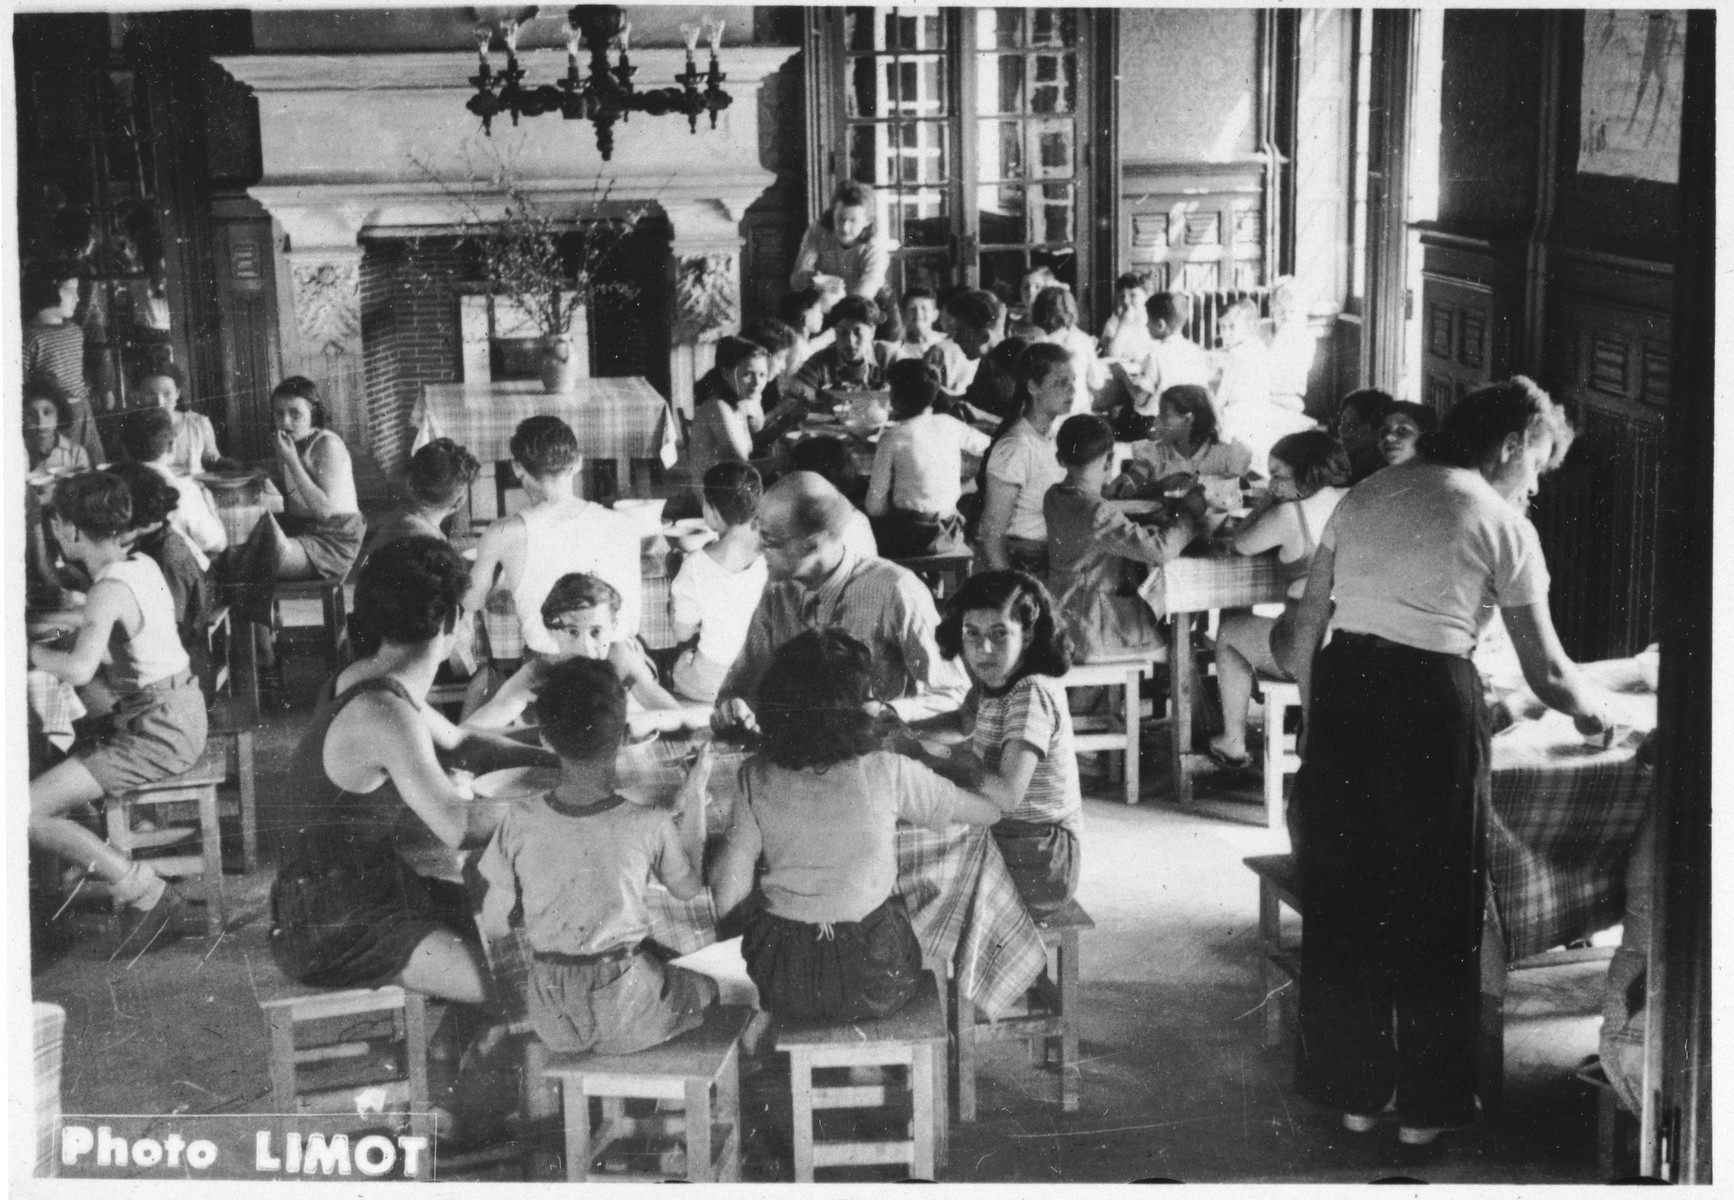 Children and counselors gather for a meal in the dining room of the Mehoncourt children's home.